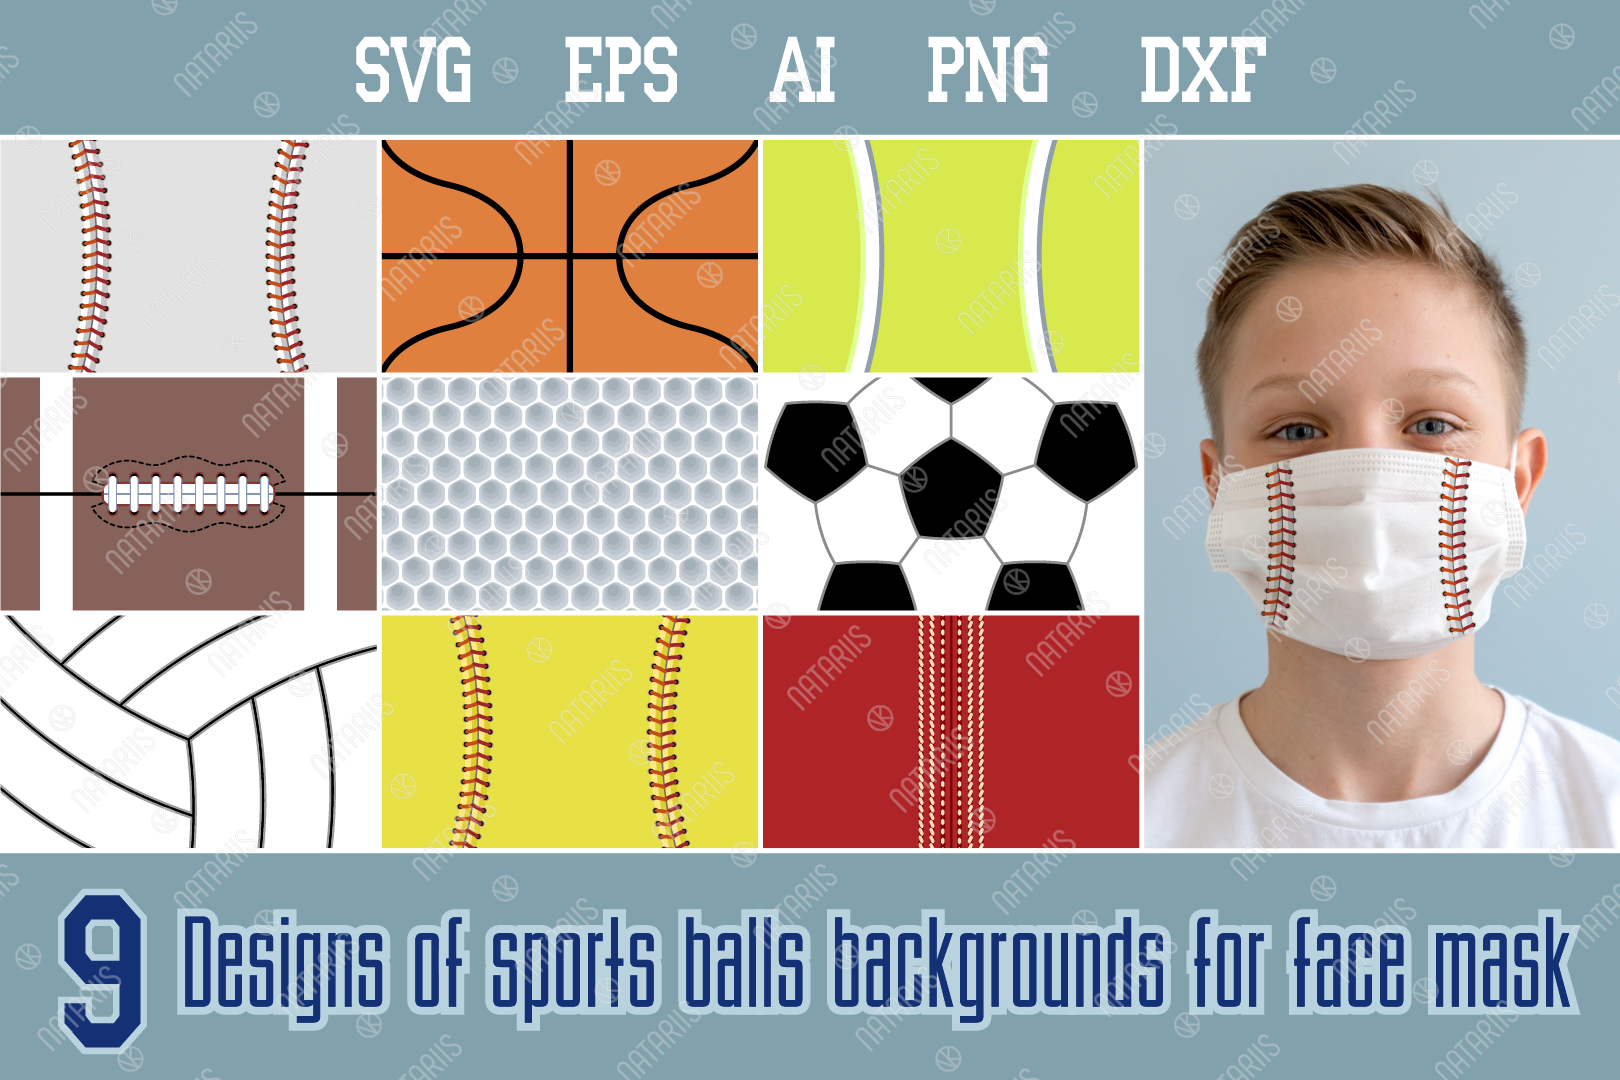 9 Design Of Sports Balls Backgrounds Graphic By Natariis Studio